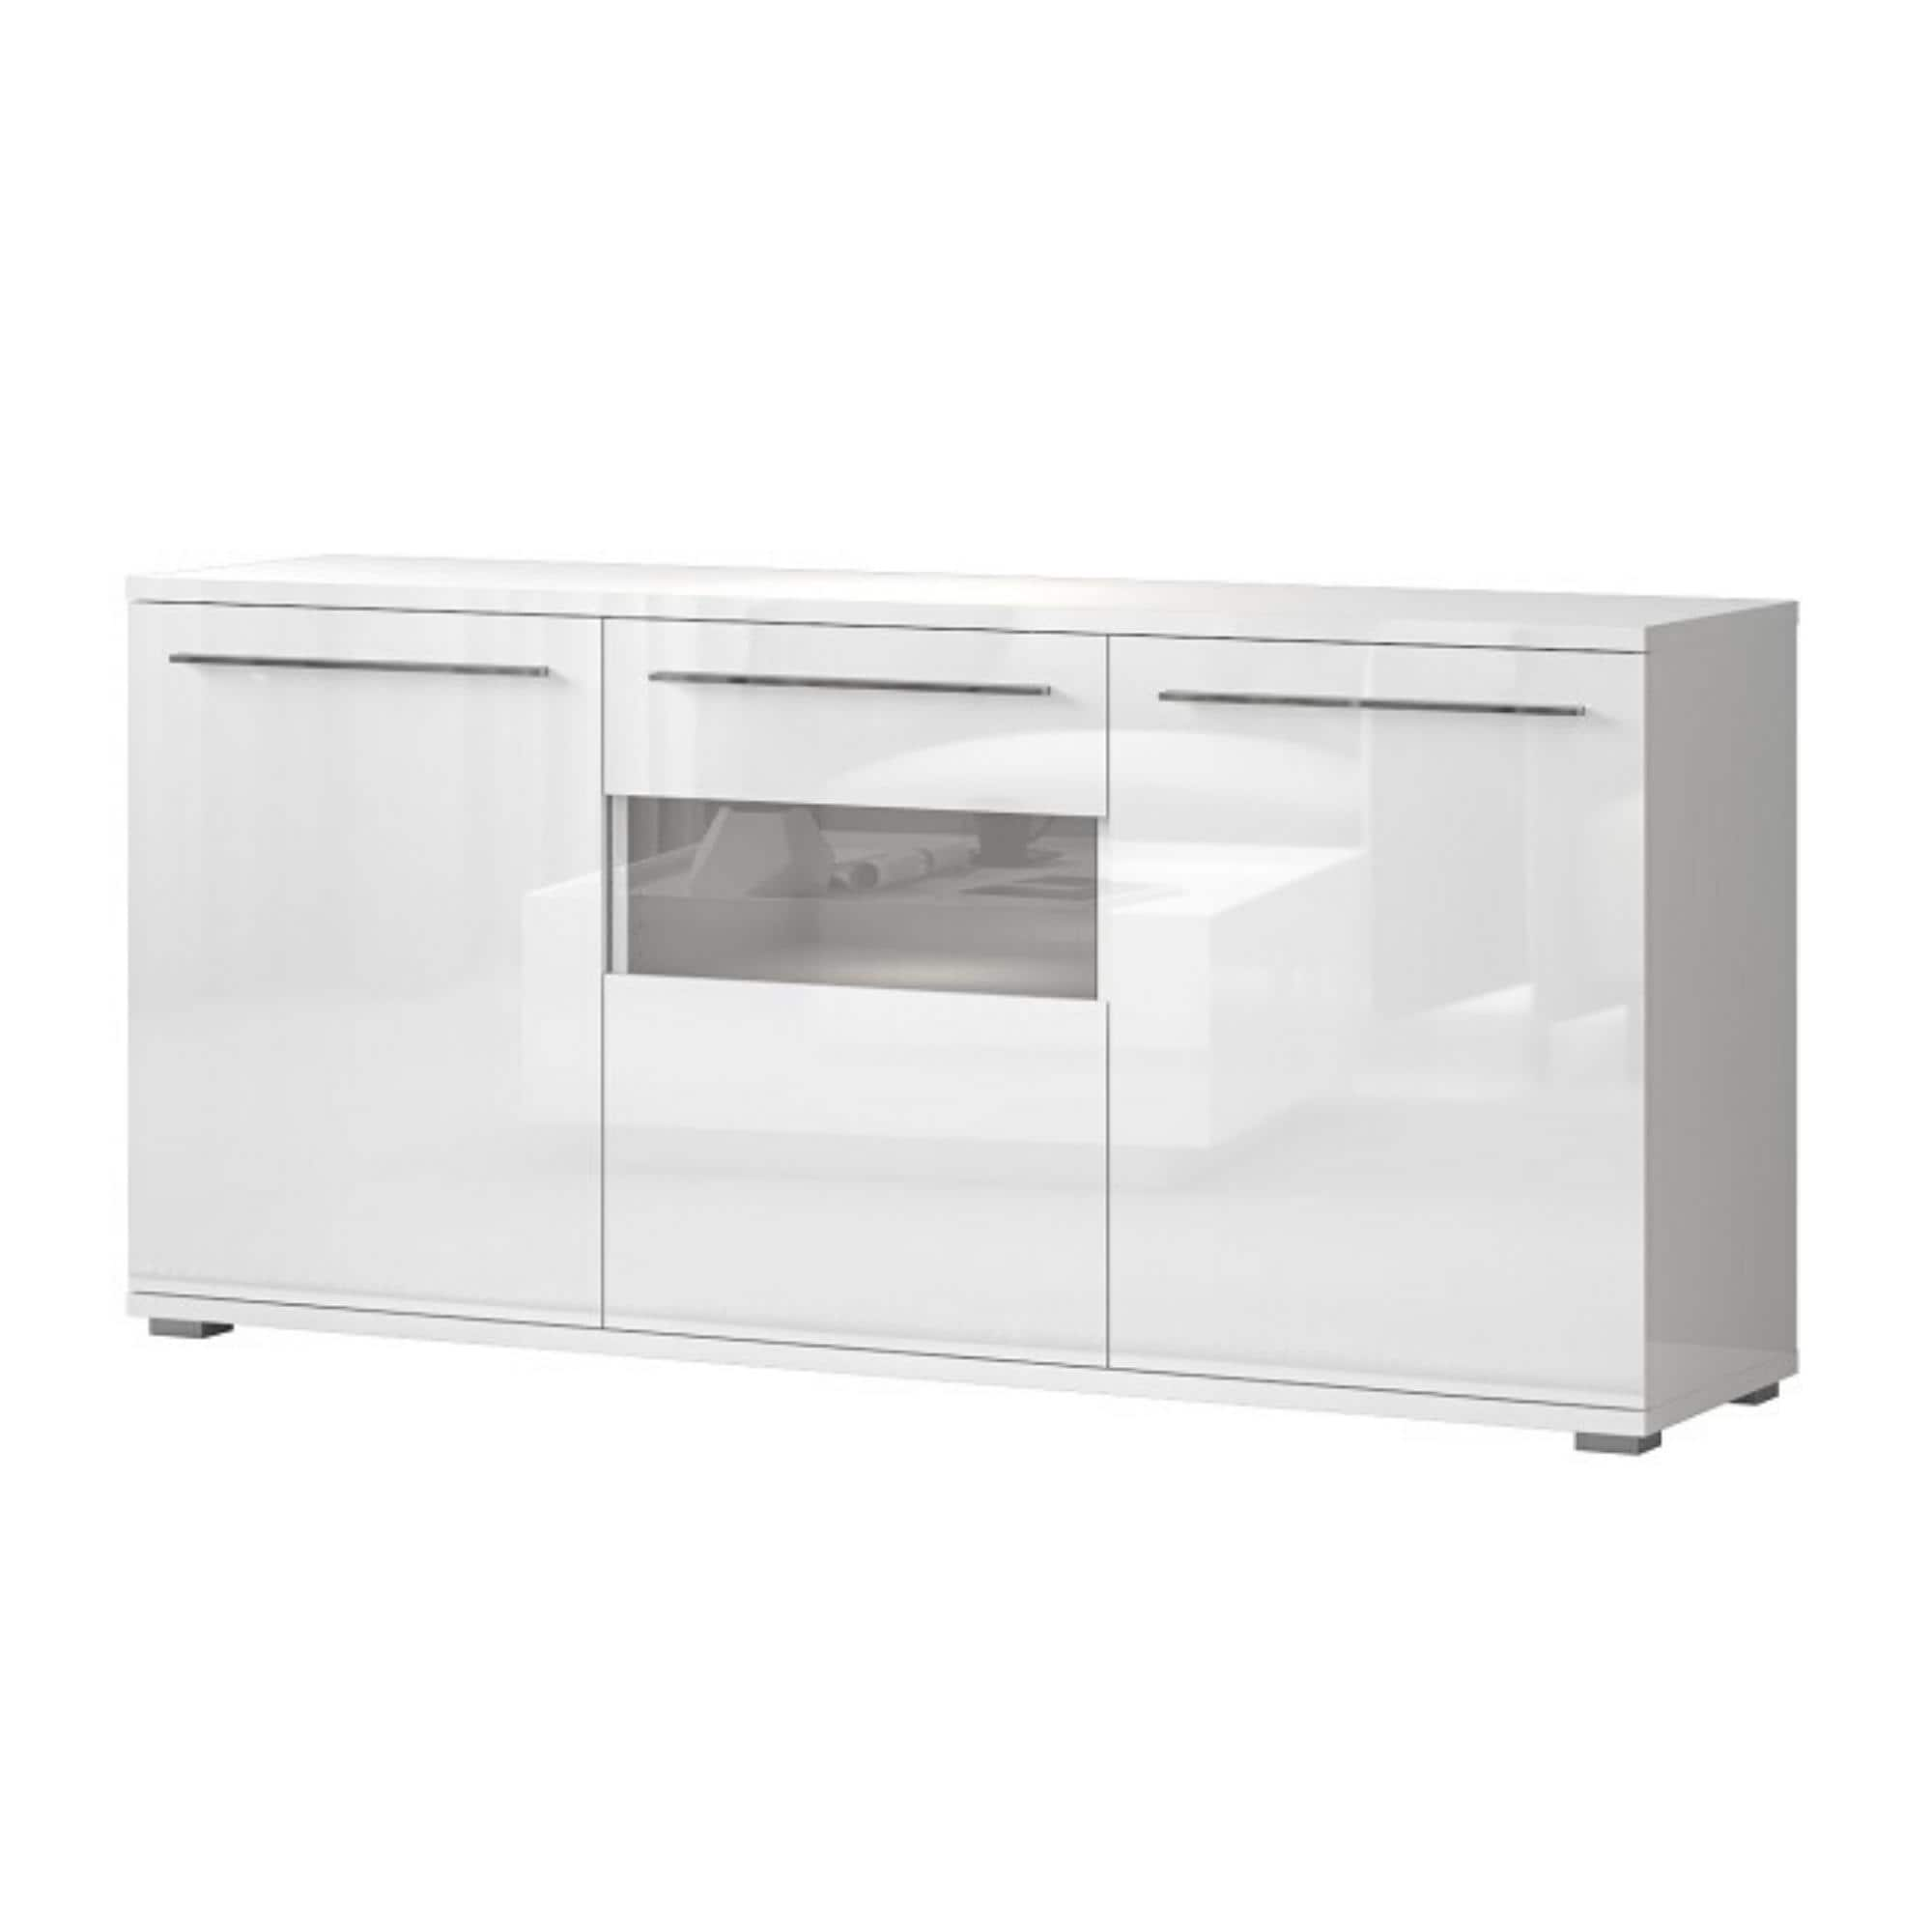 Shop Piano 3 Cabinet High Gloss Sideboard White Or Beige Options Available Overstock 32061943